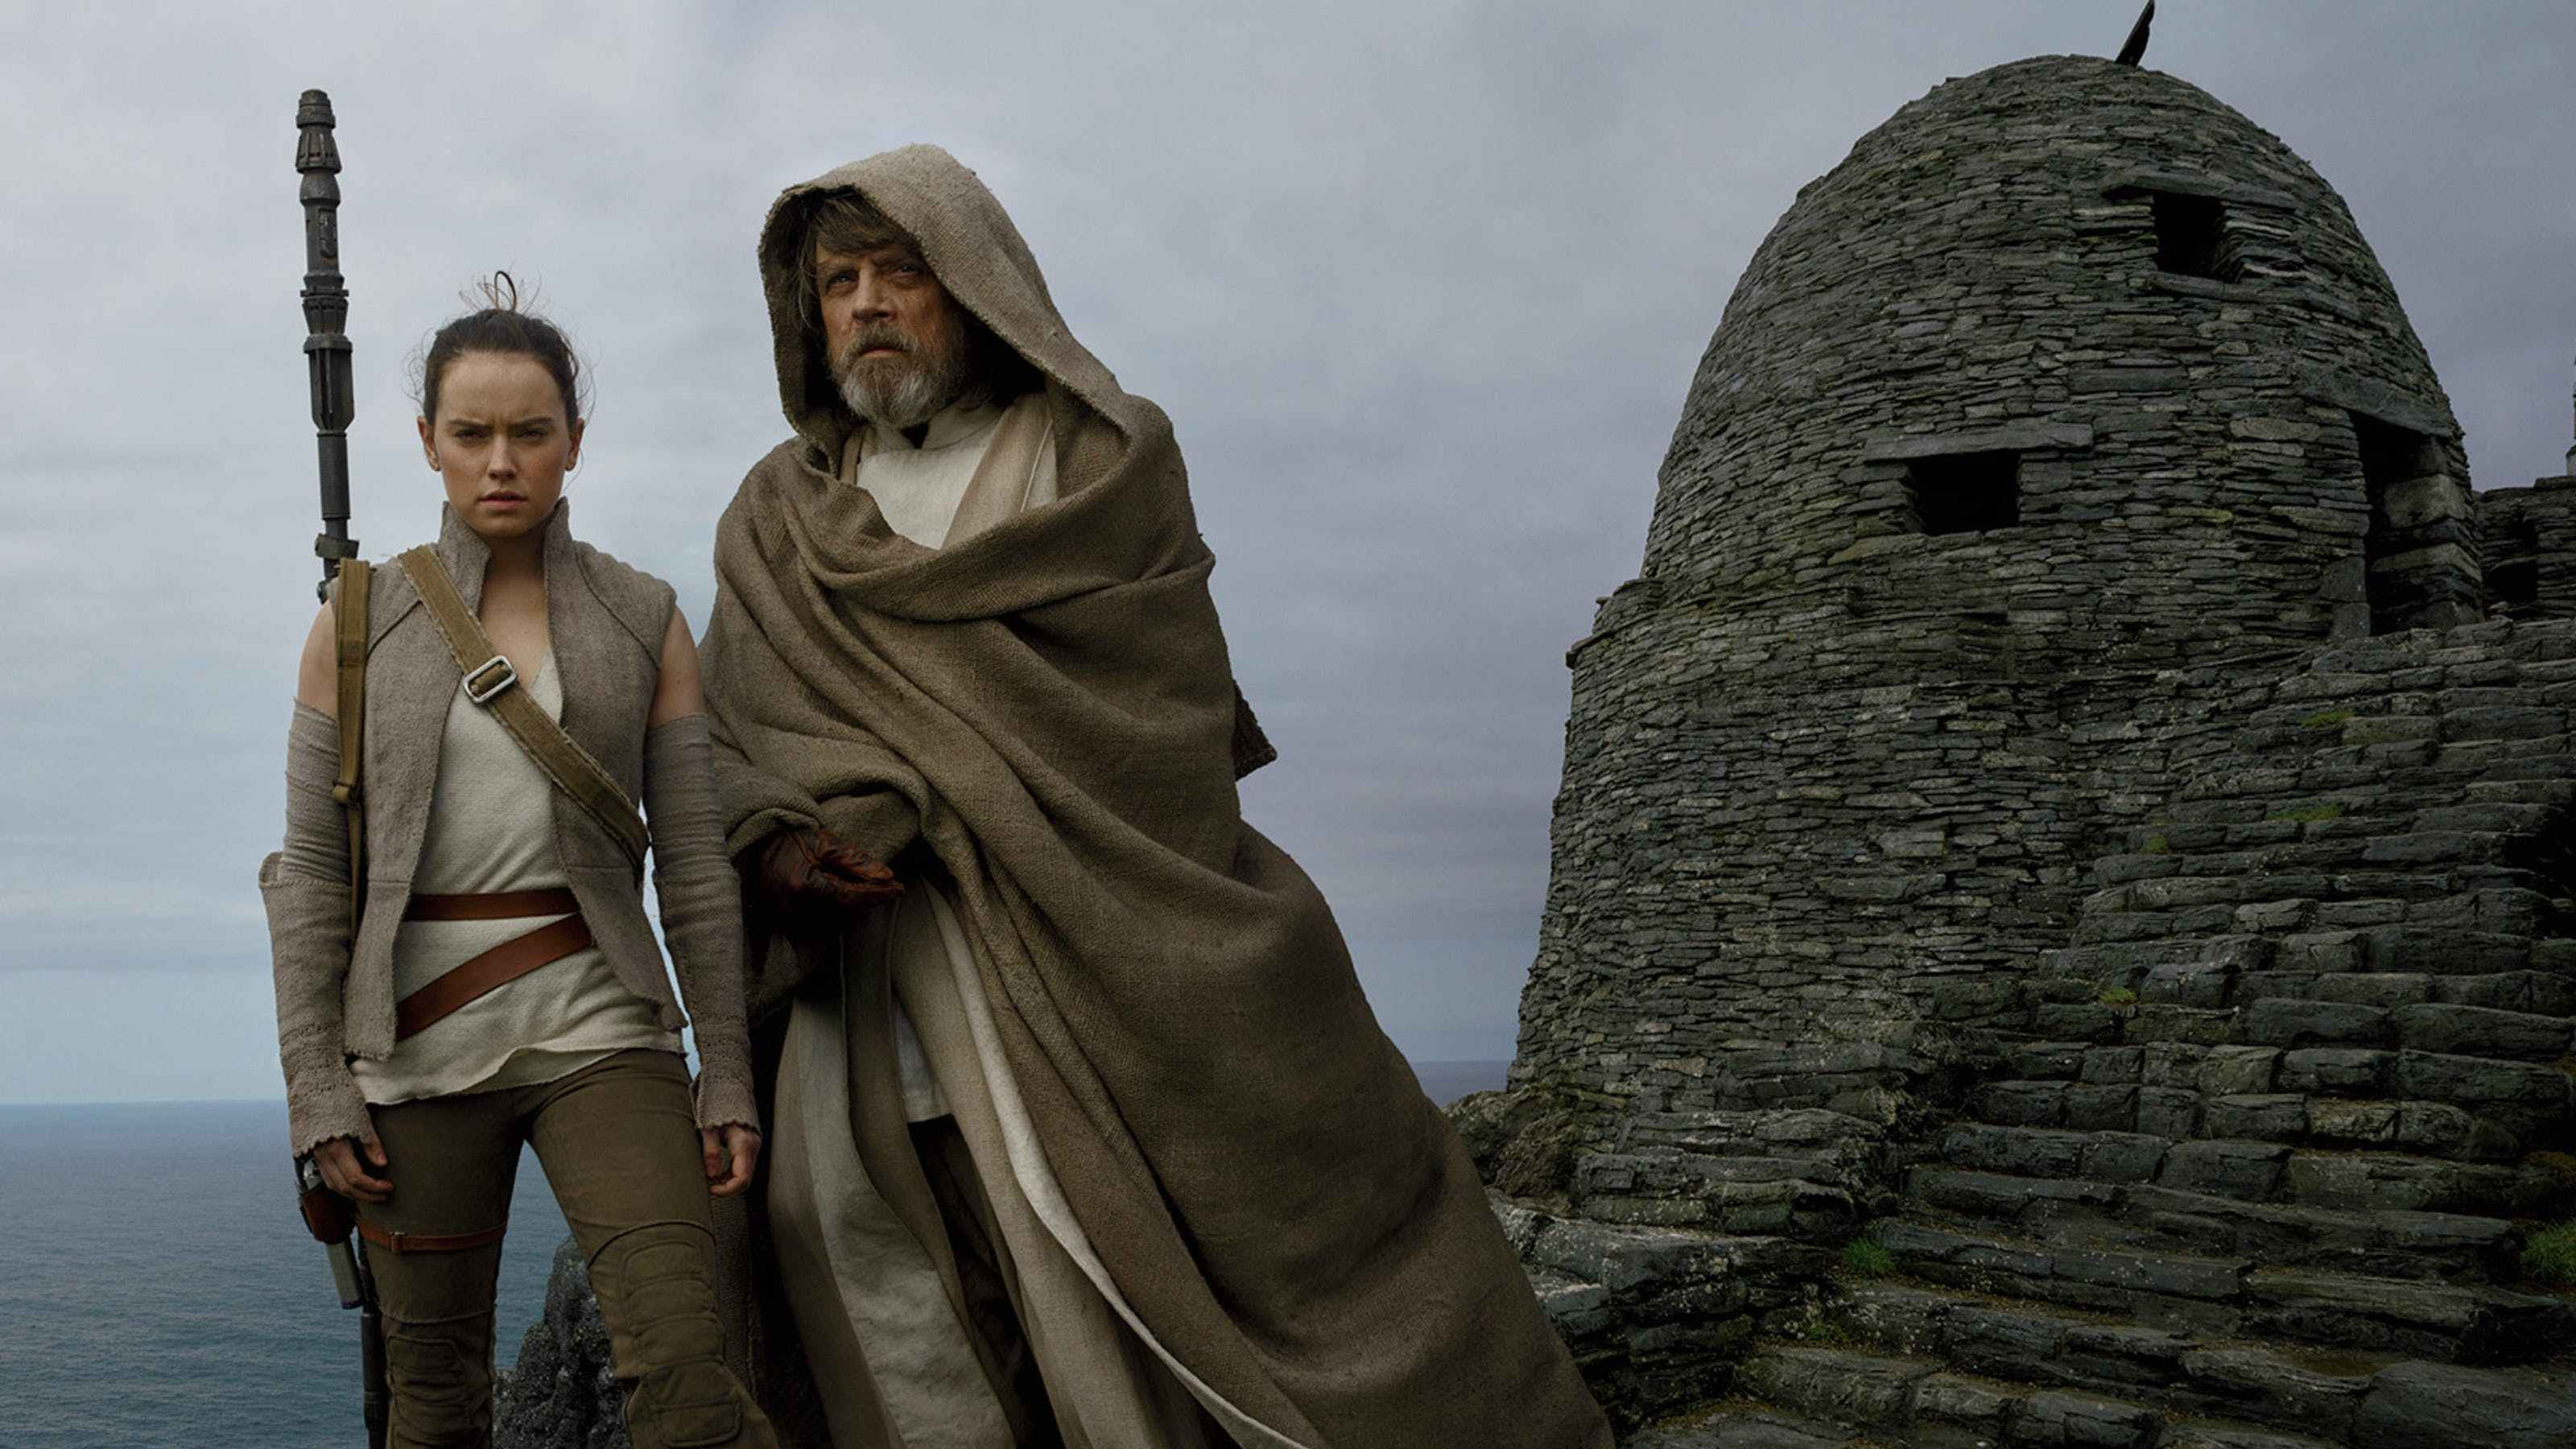 5 new movies plus 'Star Wars' equal feast for film fans